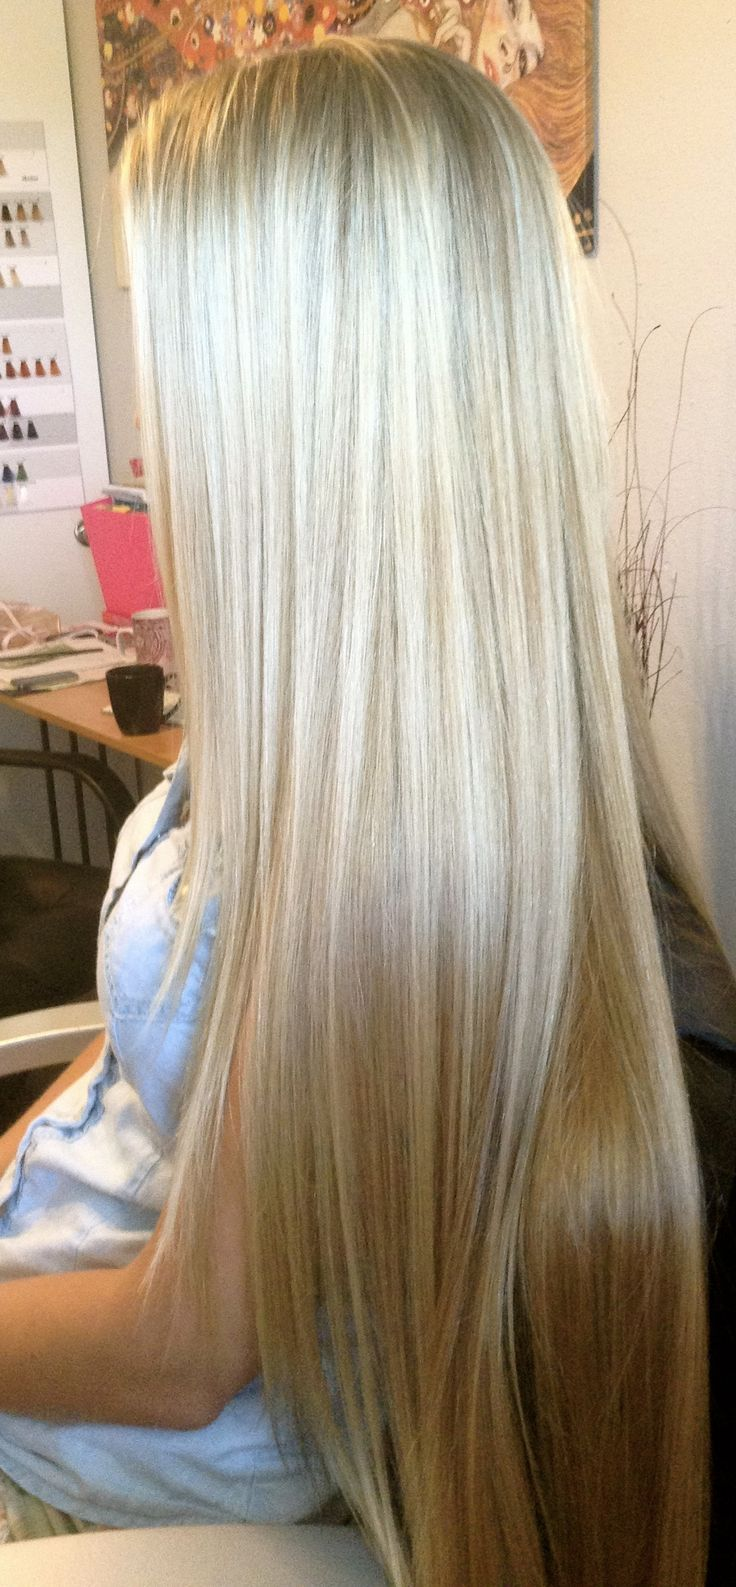 Long Hairstyles For Thick Straight Hair 2 - 20 effortlessly stylish long hairstyles you must love